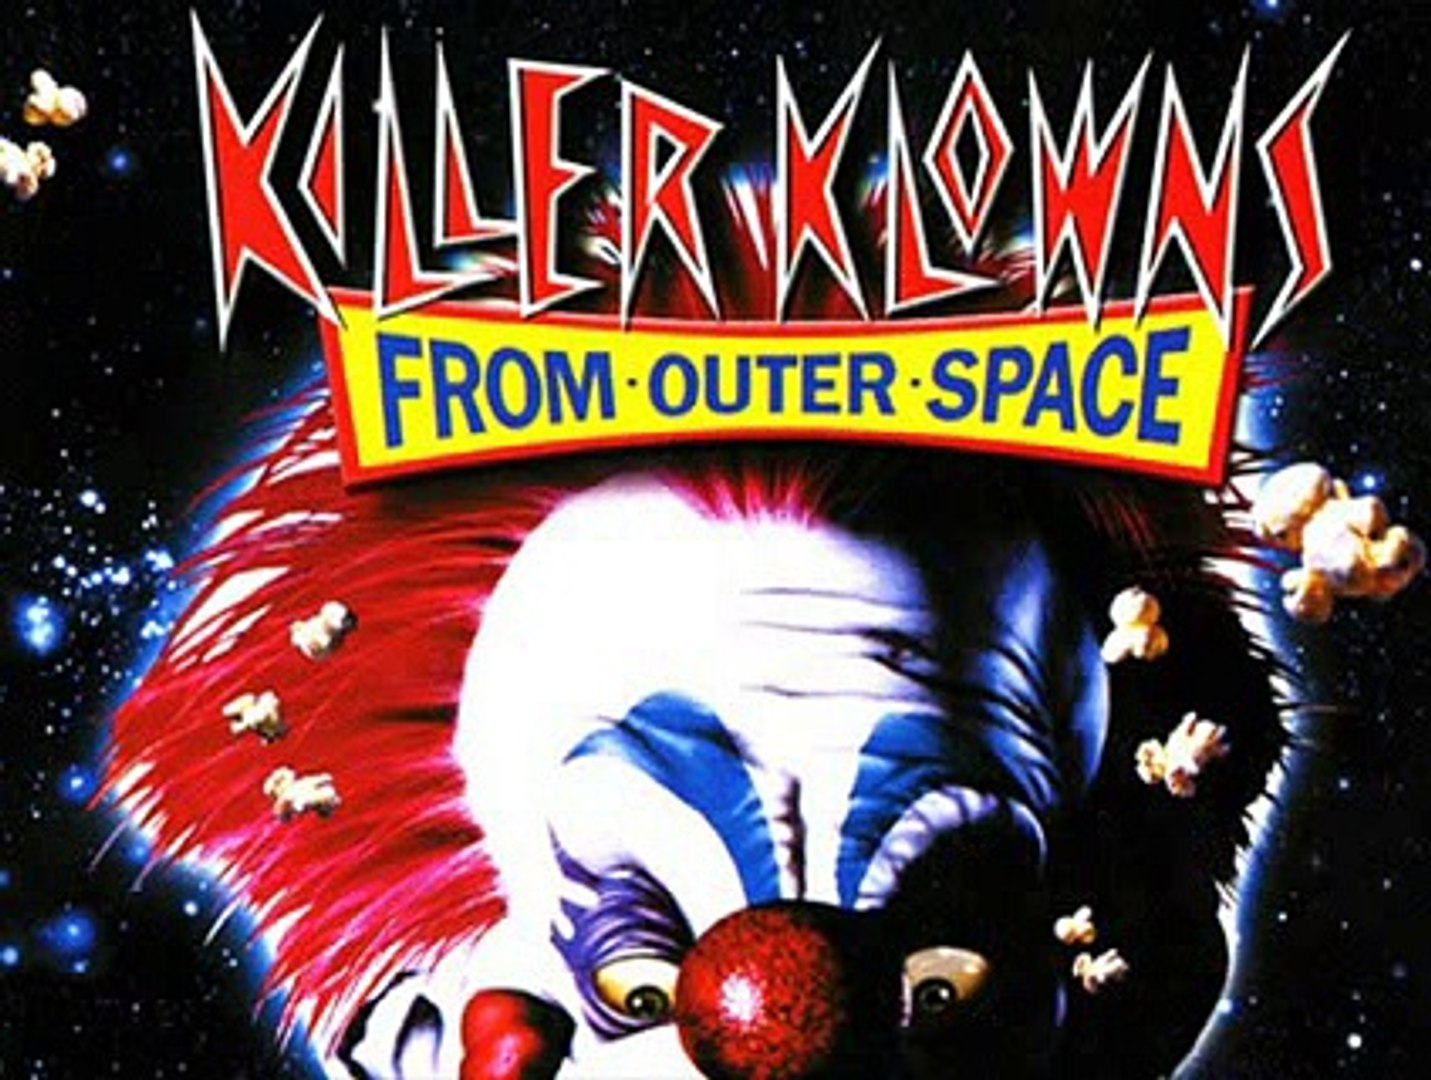 Killer Klowns from Outer Space (1988) Full Movie in ✵HD Quality✵